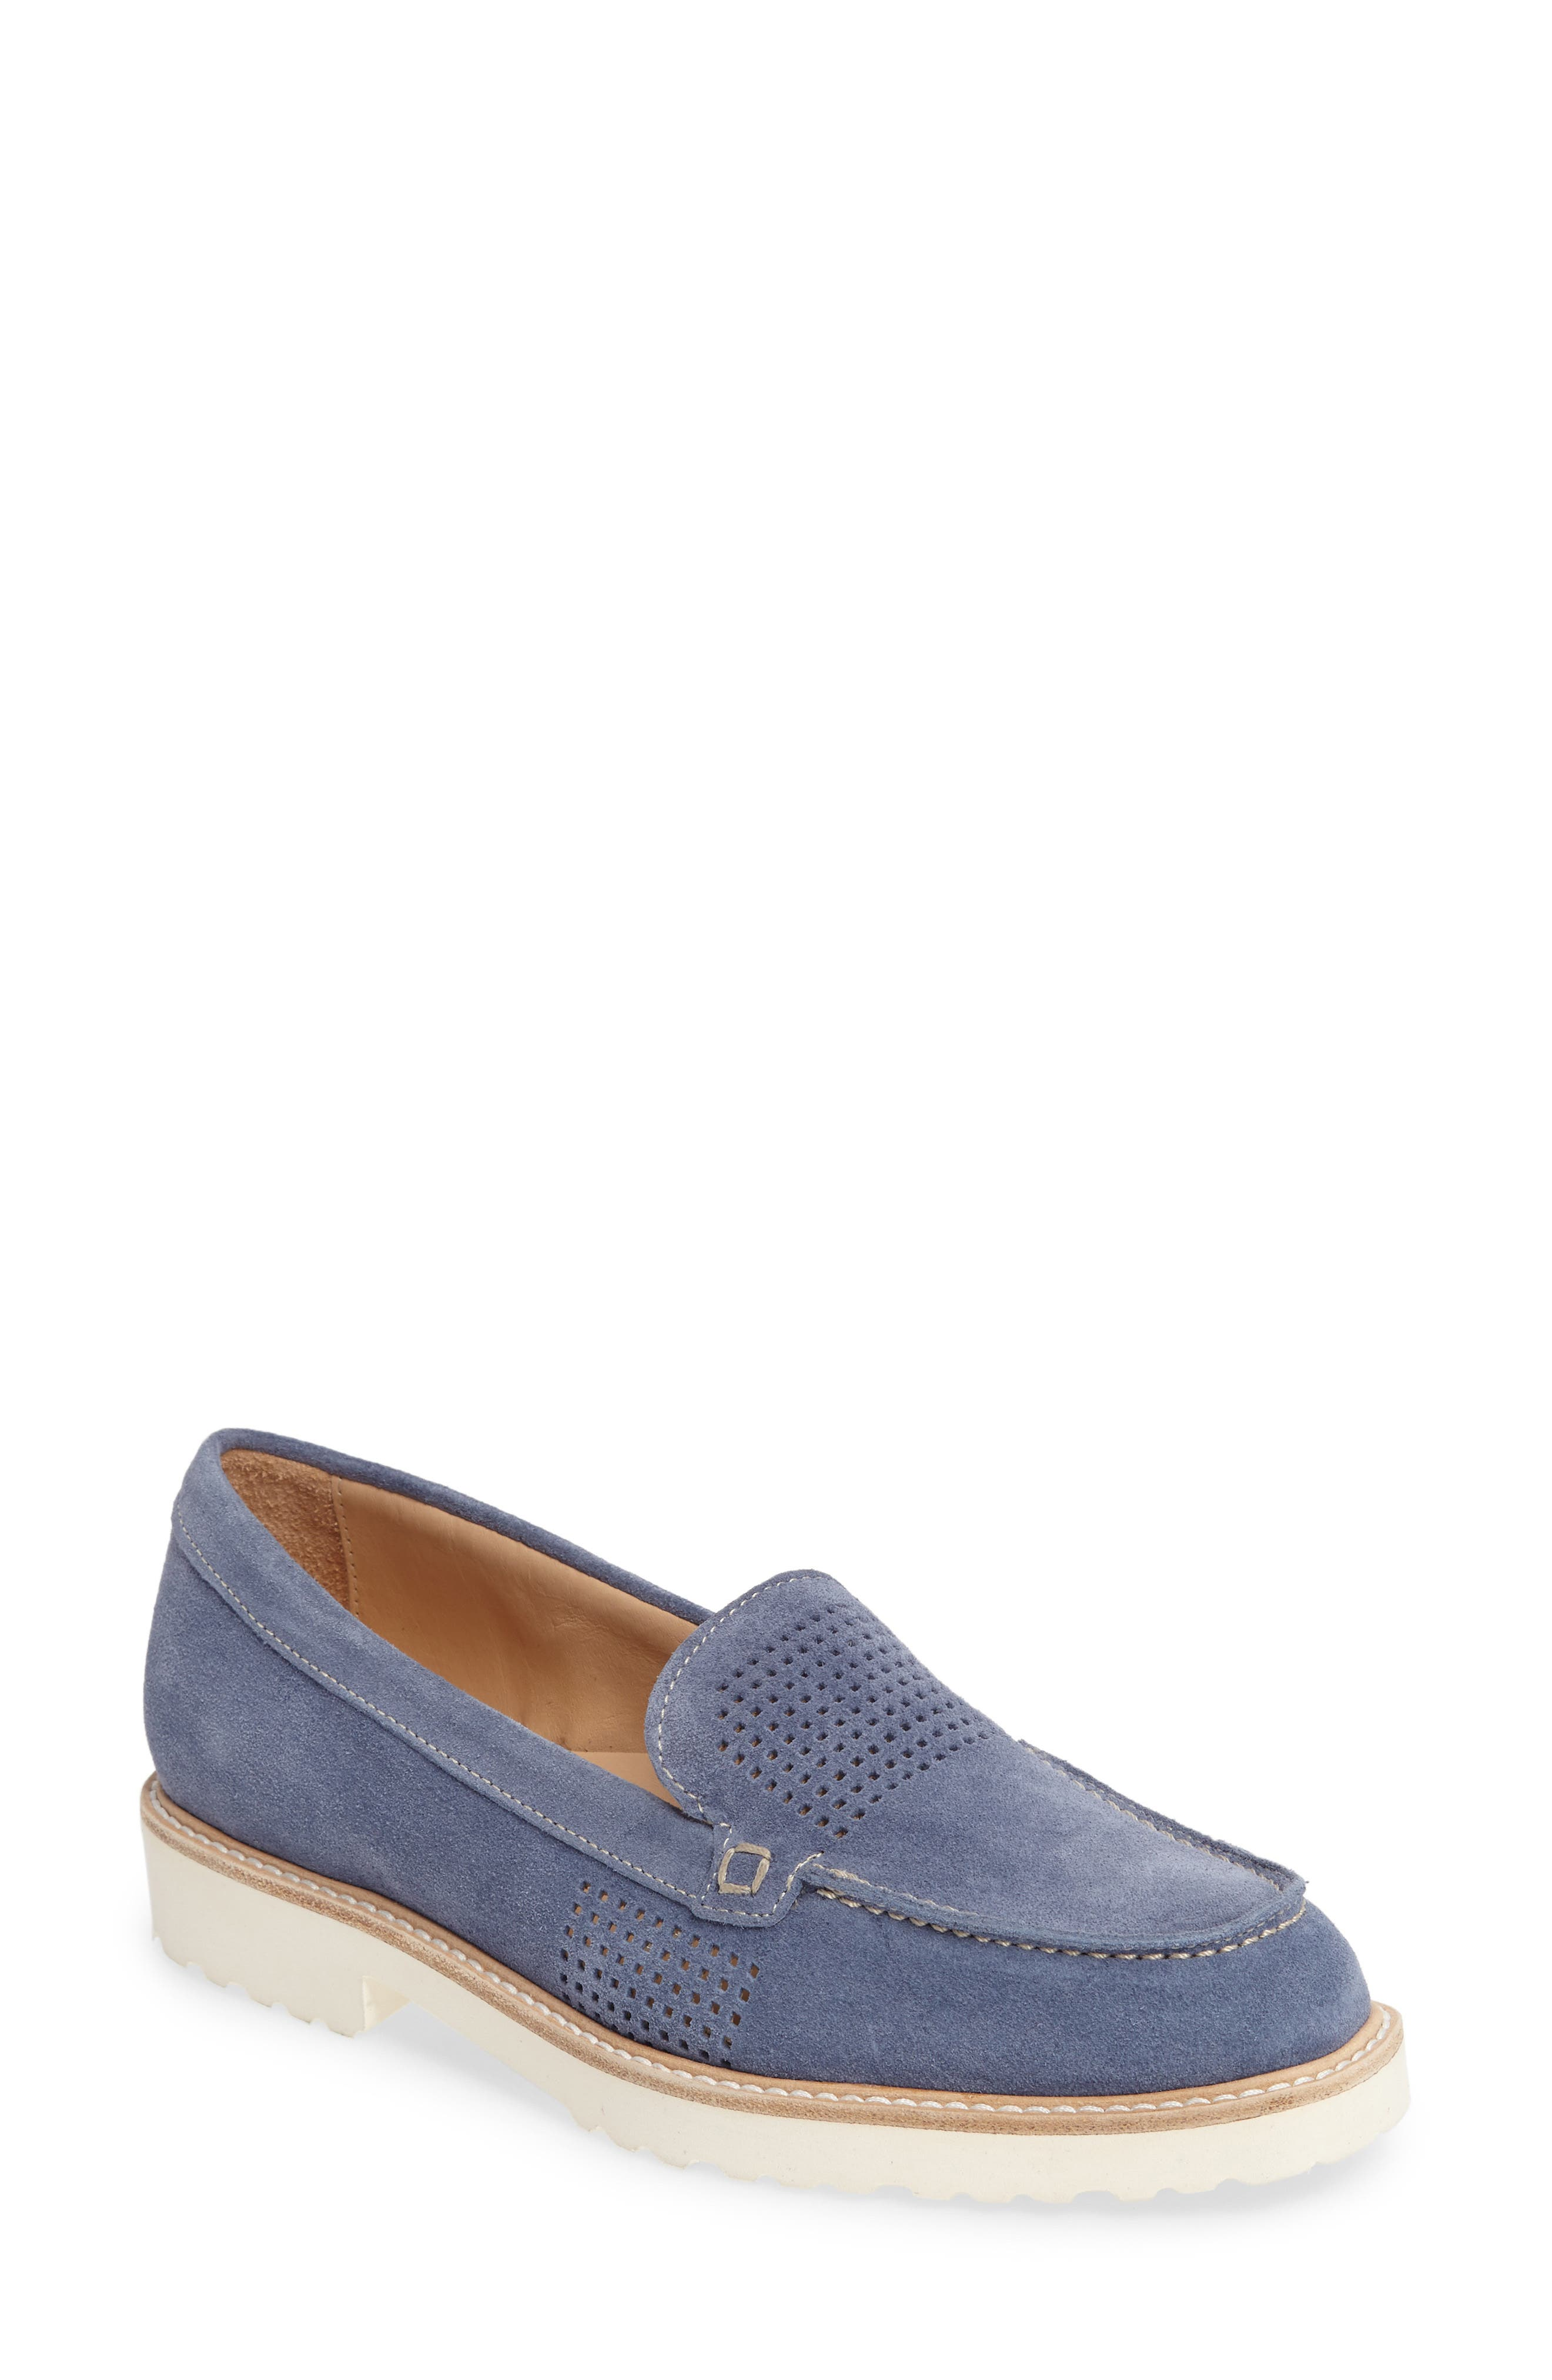 Wazzy Loafer,                         Main,                         color, 400